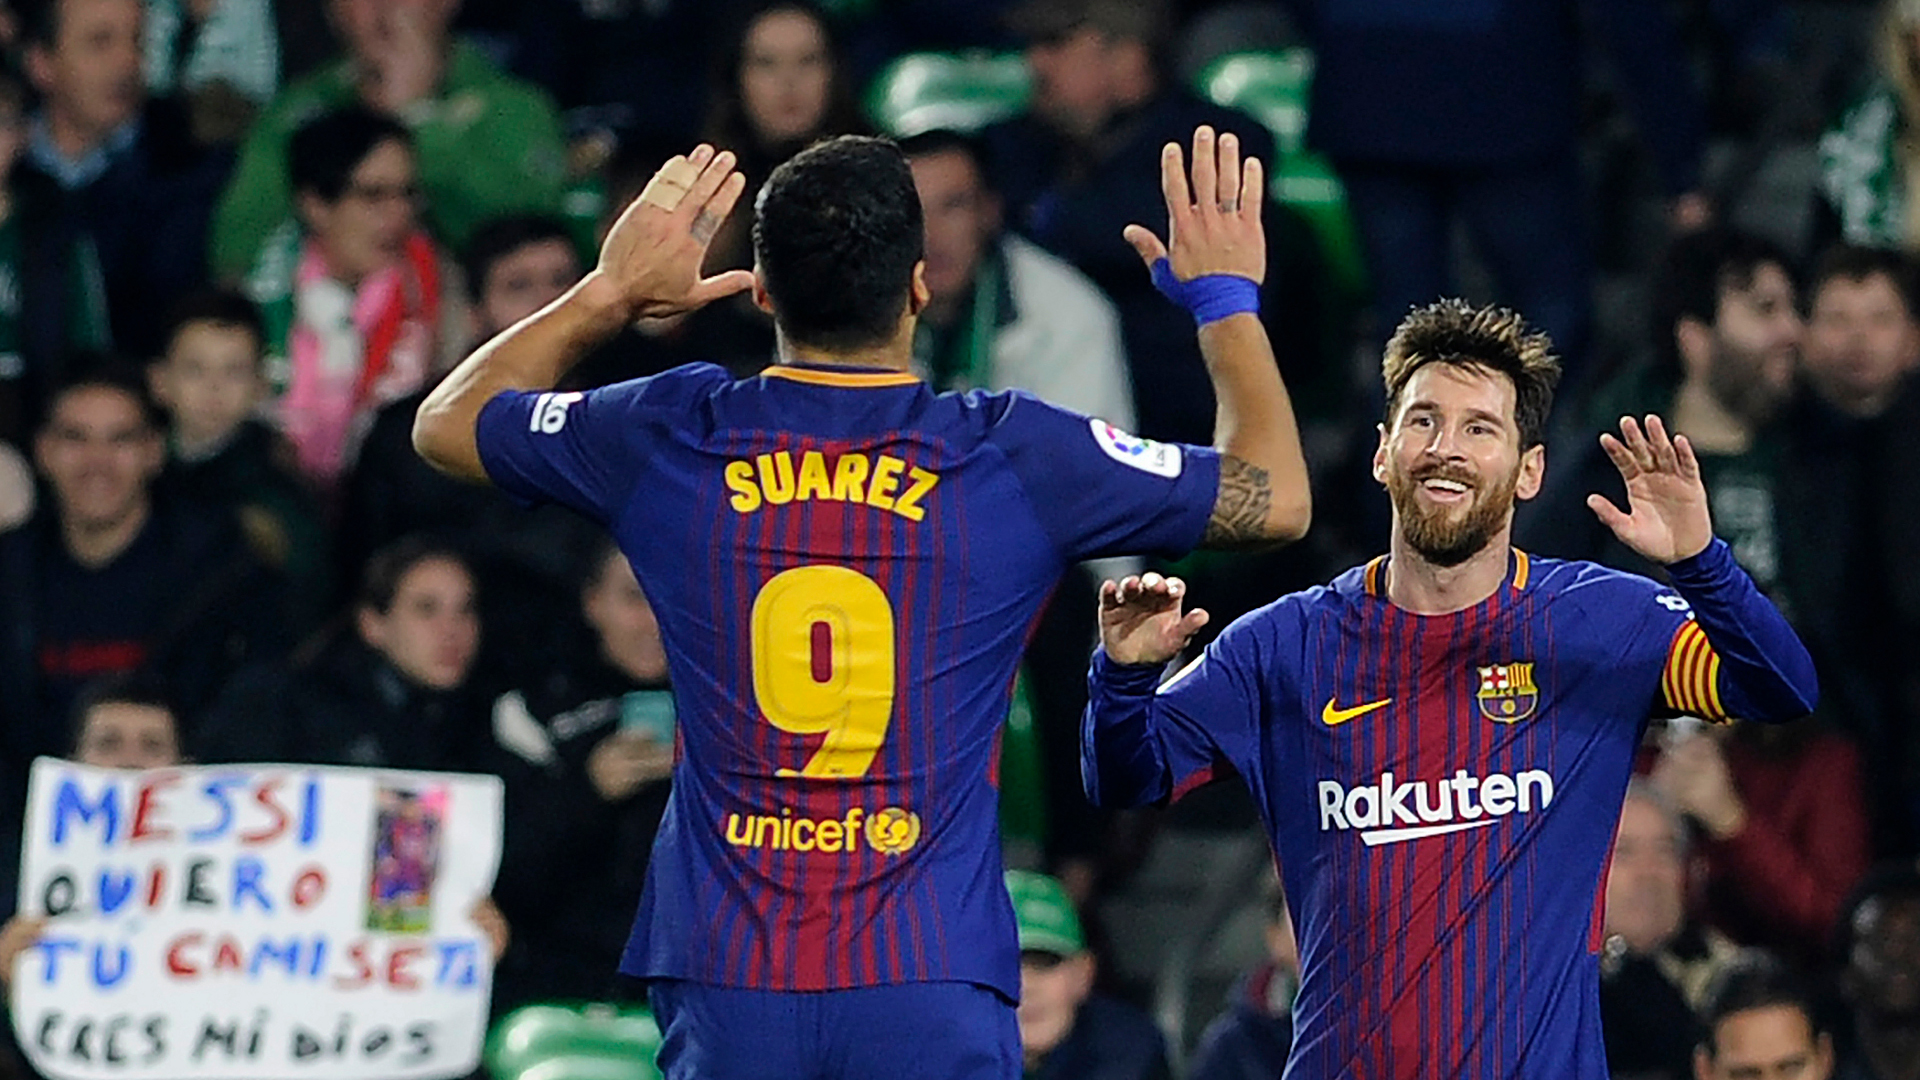 Messi, Suarez bag braces as Barcelona humiliate Huesca